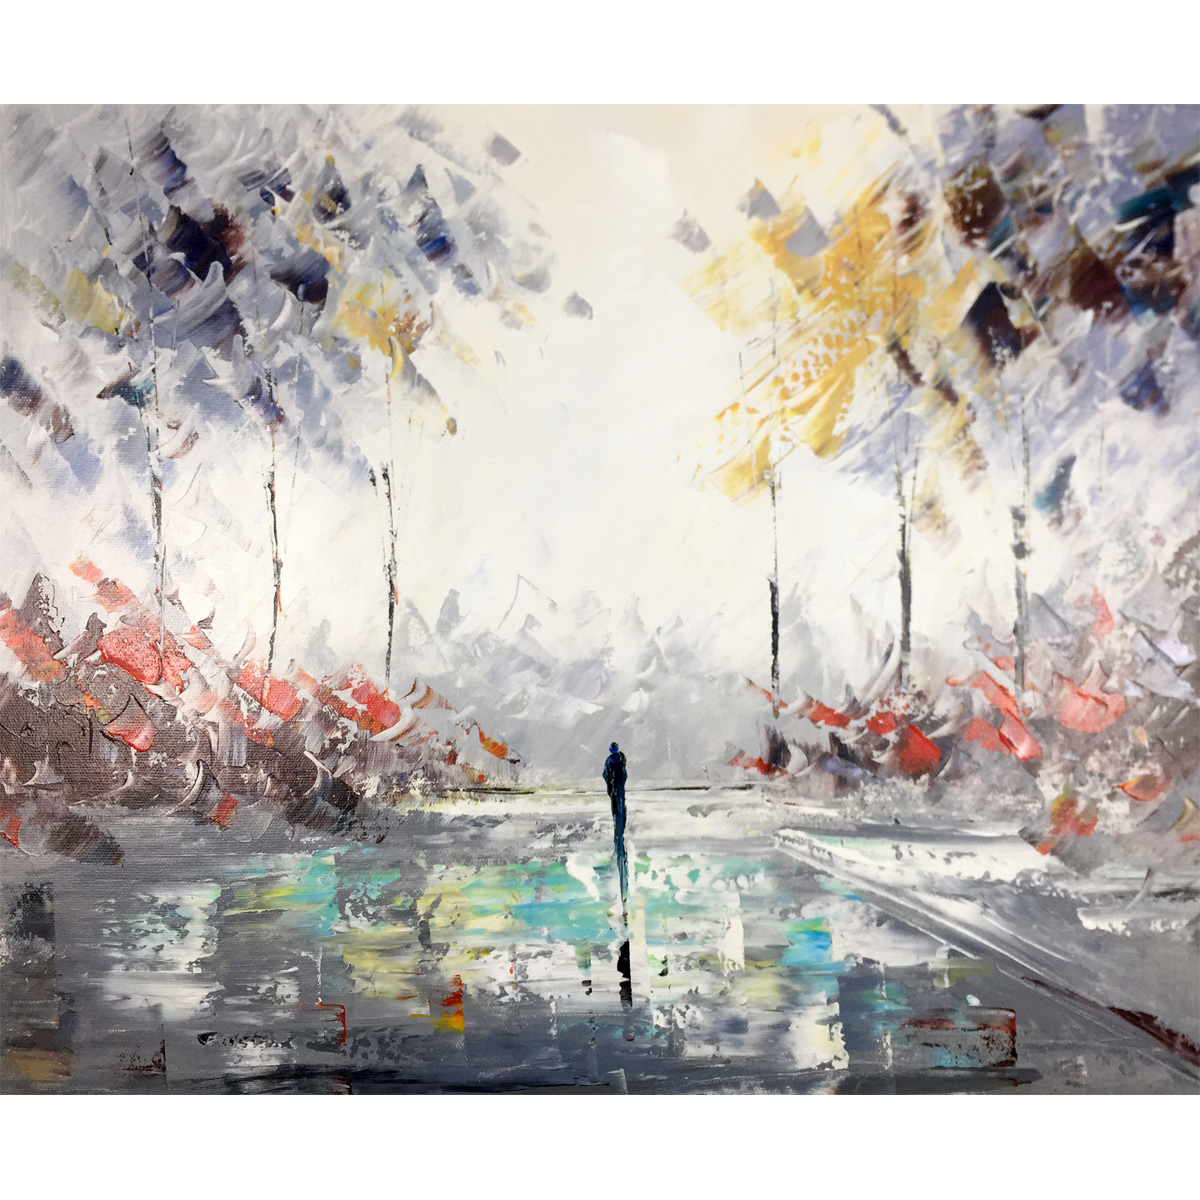 Abstract Landscape Painting On Canvas Hand Painting Oil Paintings Art Colorful Artwork for Living